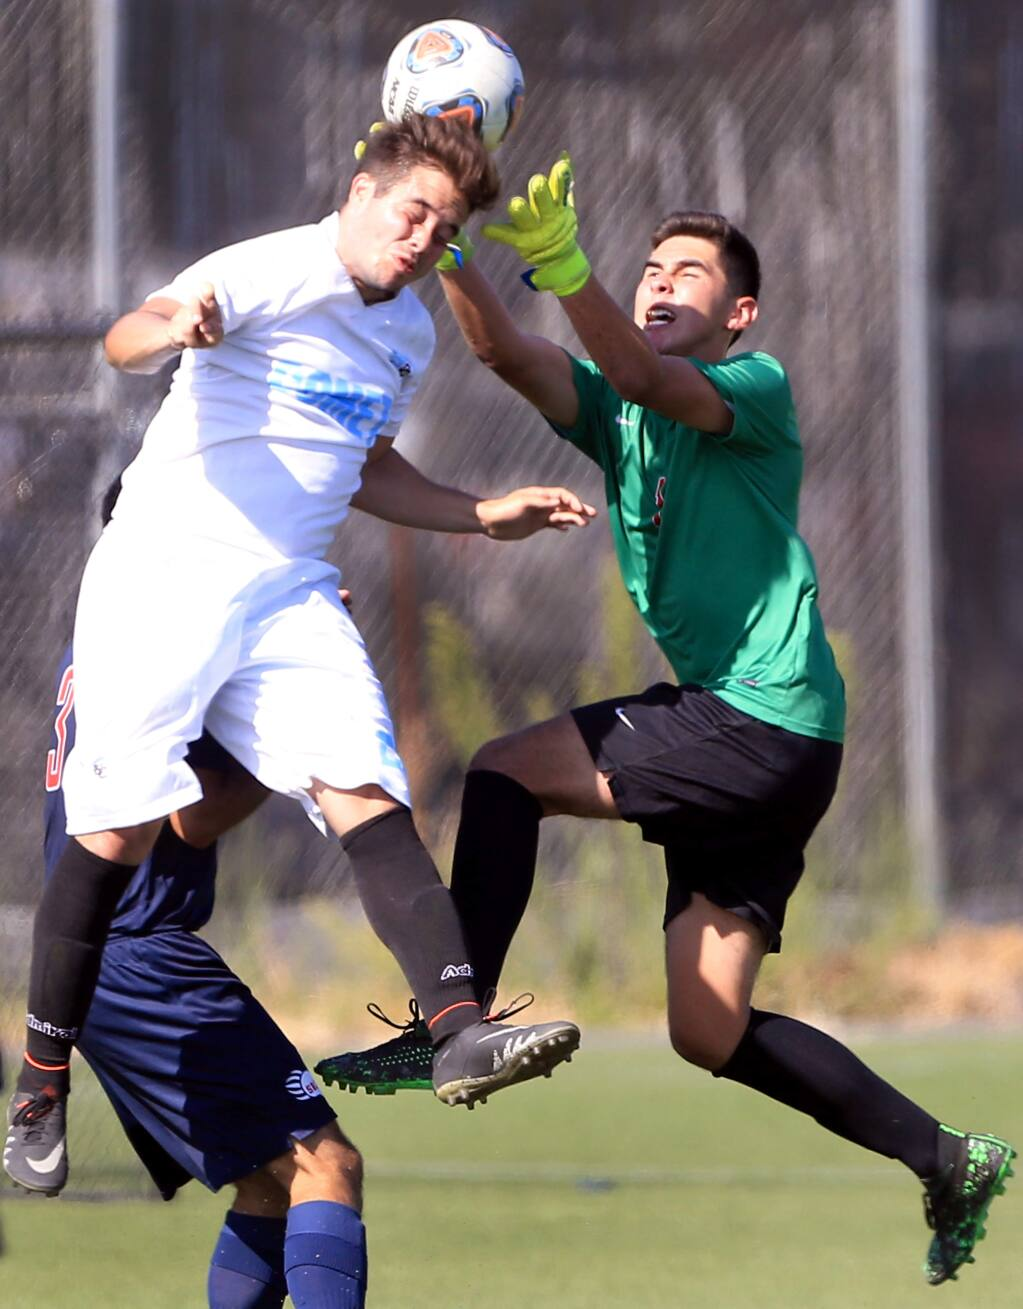 Santa Rosa Junior College goalkeeper Cristian Hernandez makes a save on goal over the header of Contra Costa's Eduardo Torres, during the Bear Cubs' home opening rout of the Comets. (Kent Porter / The Press Democrat)